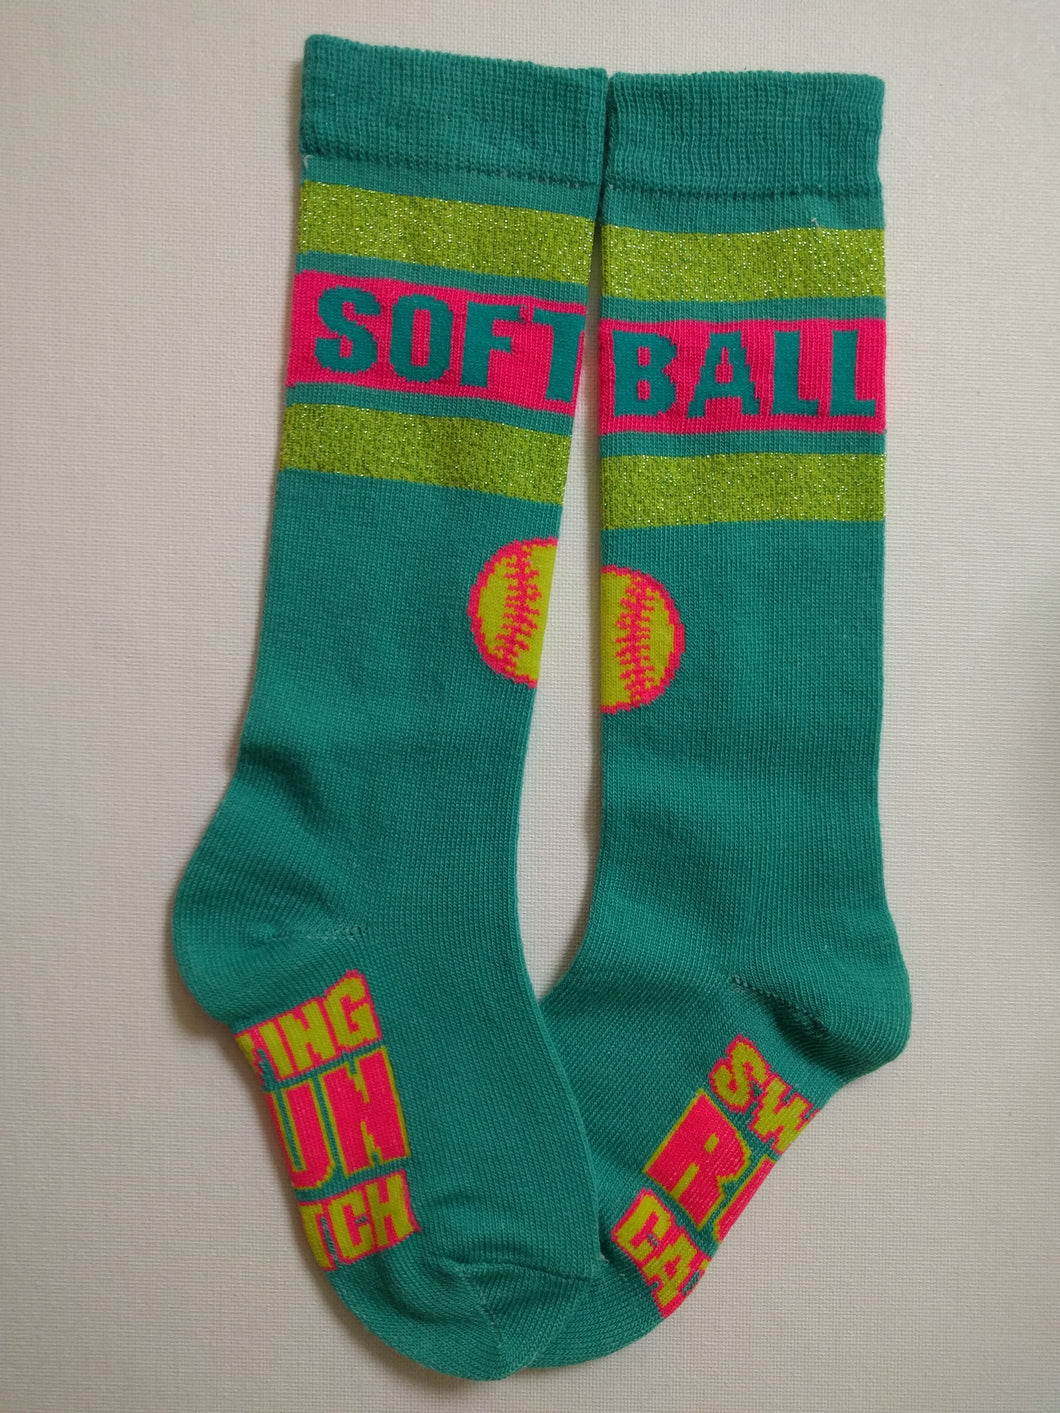 Softball Teal Knee High Socks